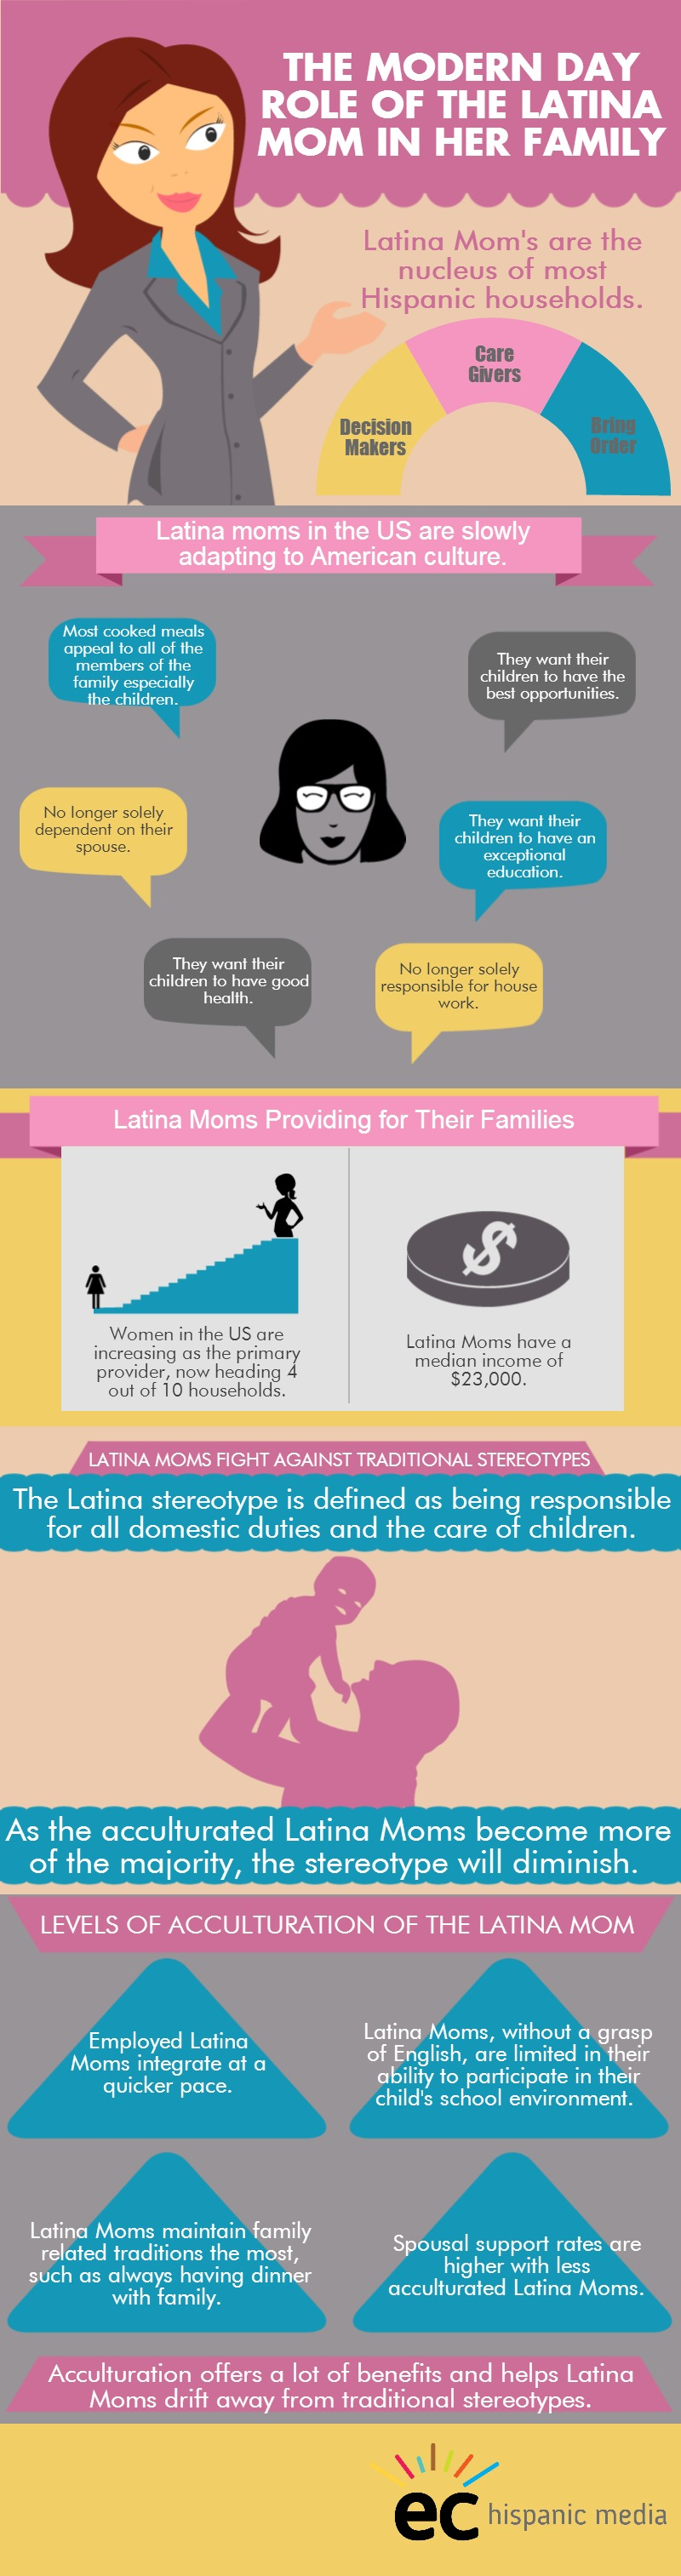 the modern day role of the latina mom in her family latina moms  latina moms are decision makers care givers and the nucleus they re slowly adapting to american culture and increasingly the primary provider